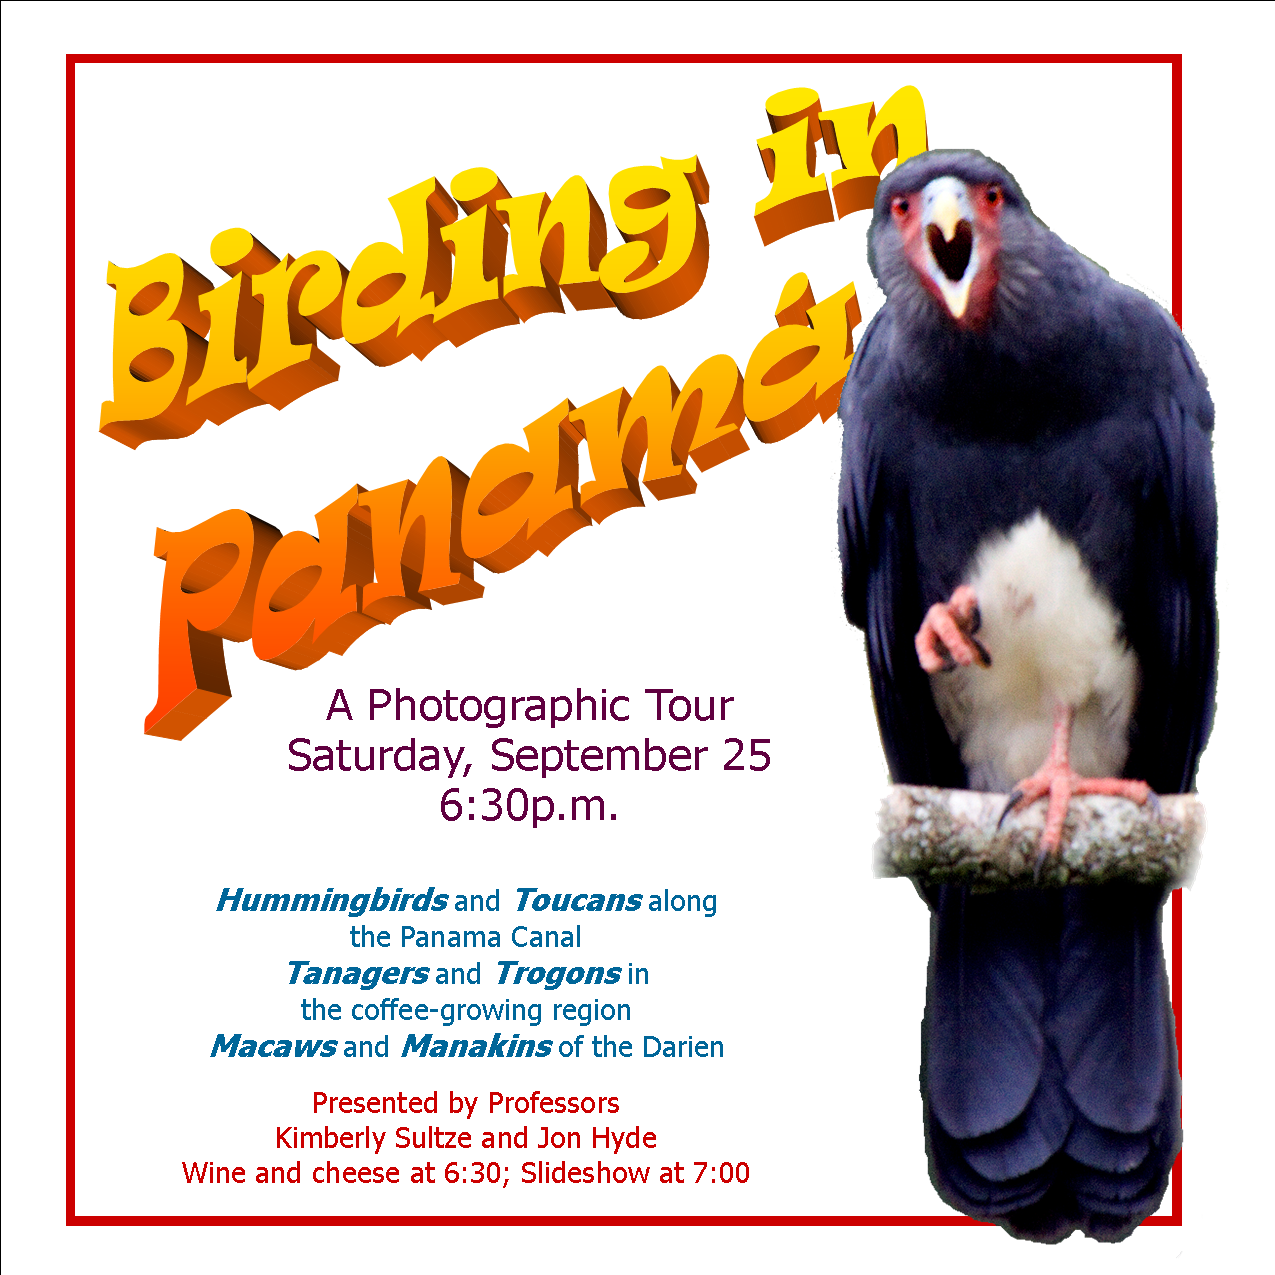 Birding in Panama and the Darien (Flyer)